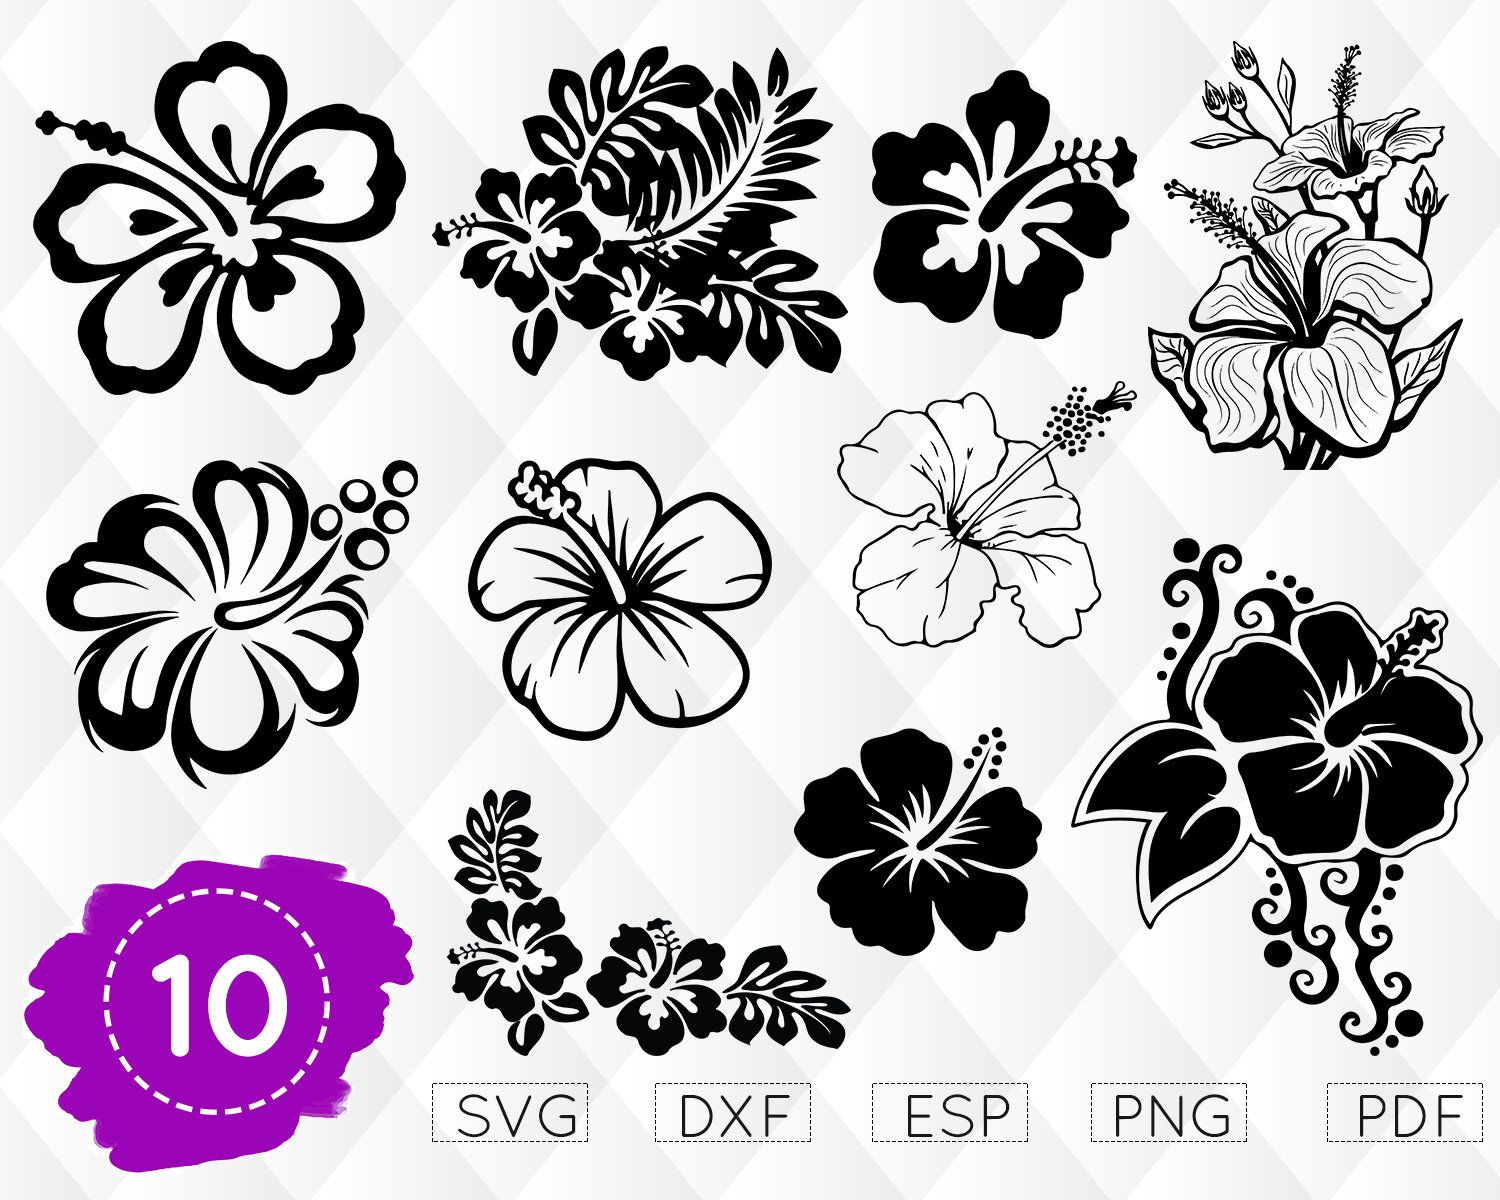 Hibiscus Svg Floral Svg Hibiscus Clipart Hawaii Svg Hibiscus Monogram Hawaii Flower Svg Hibiscus Cricut Stencil Flower Outline Flower Drawing Flower Svg